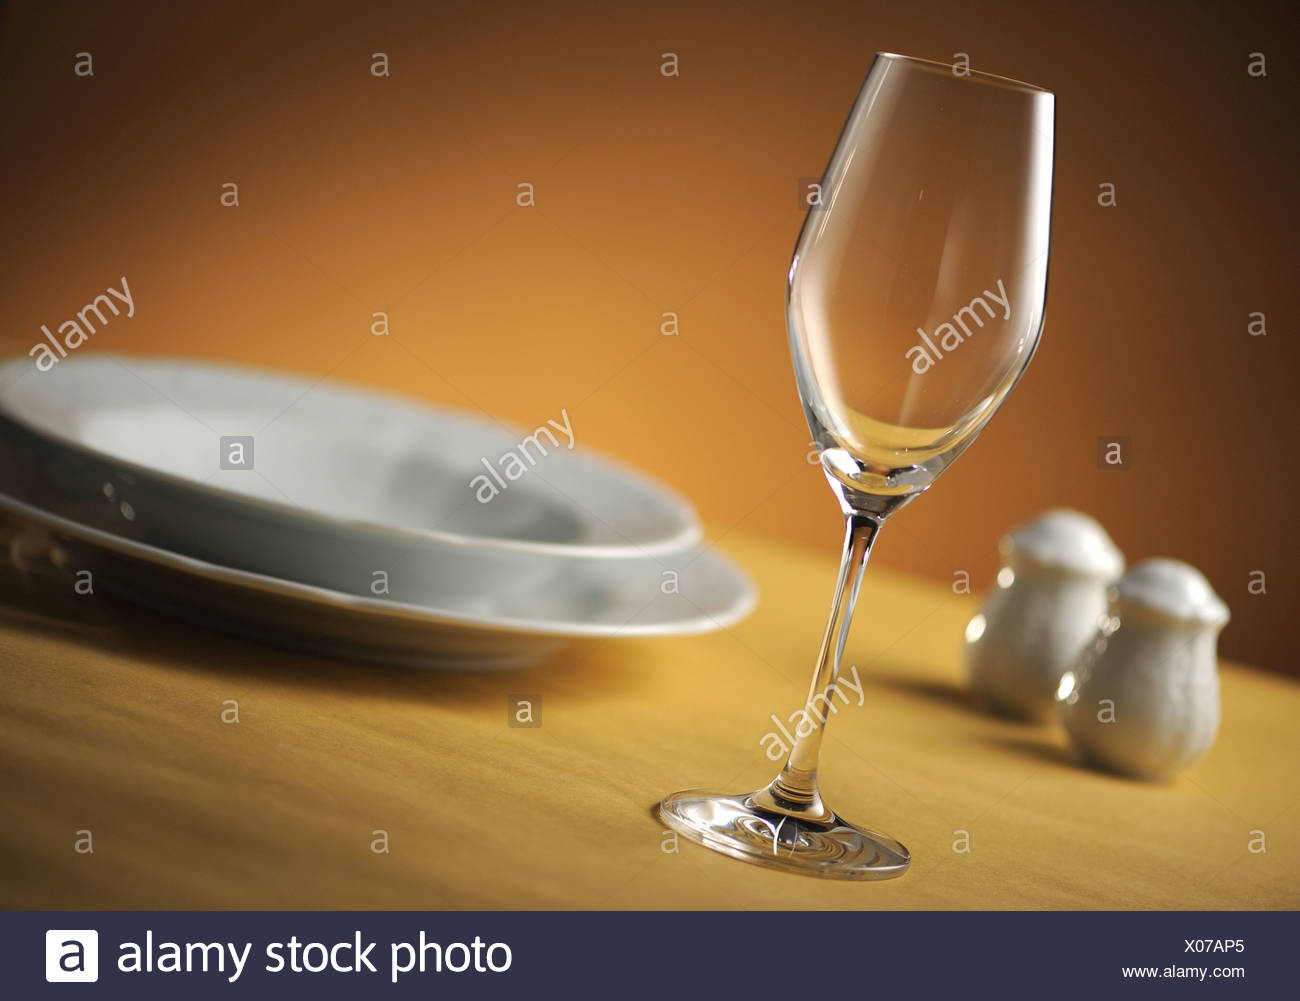 glass on table, close up, shallow dof - Stock Image